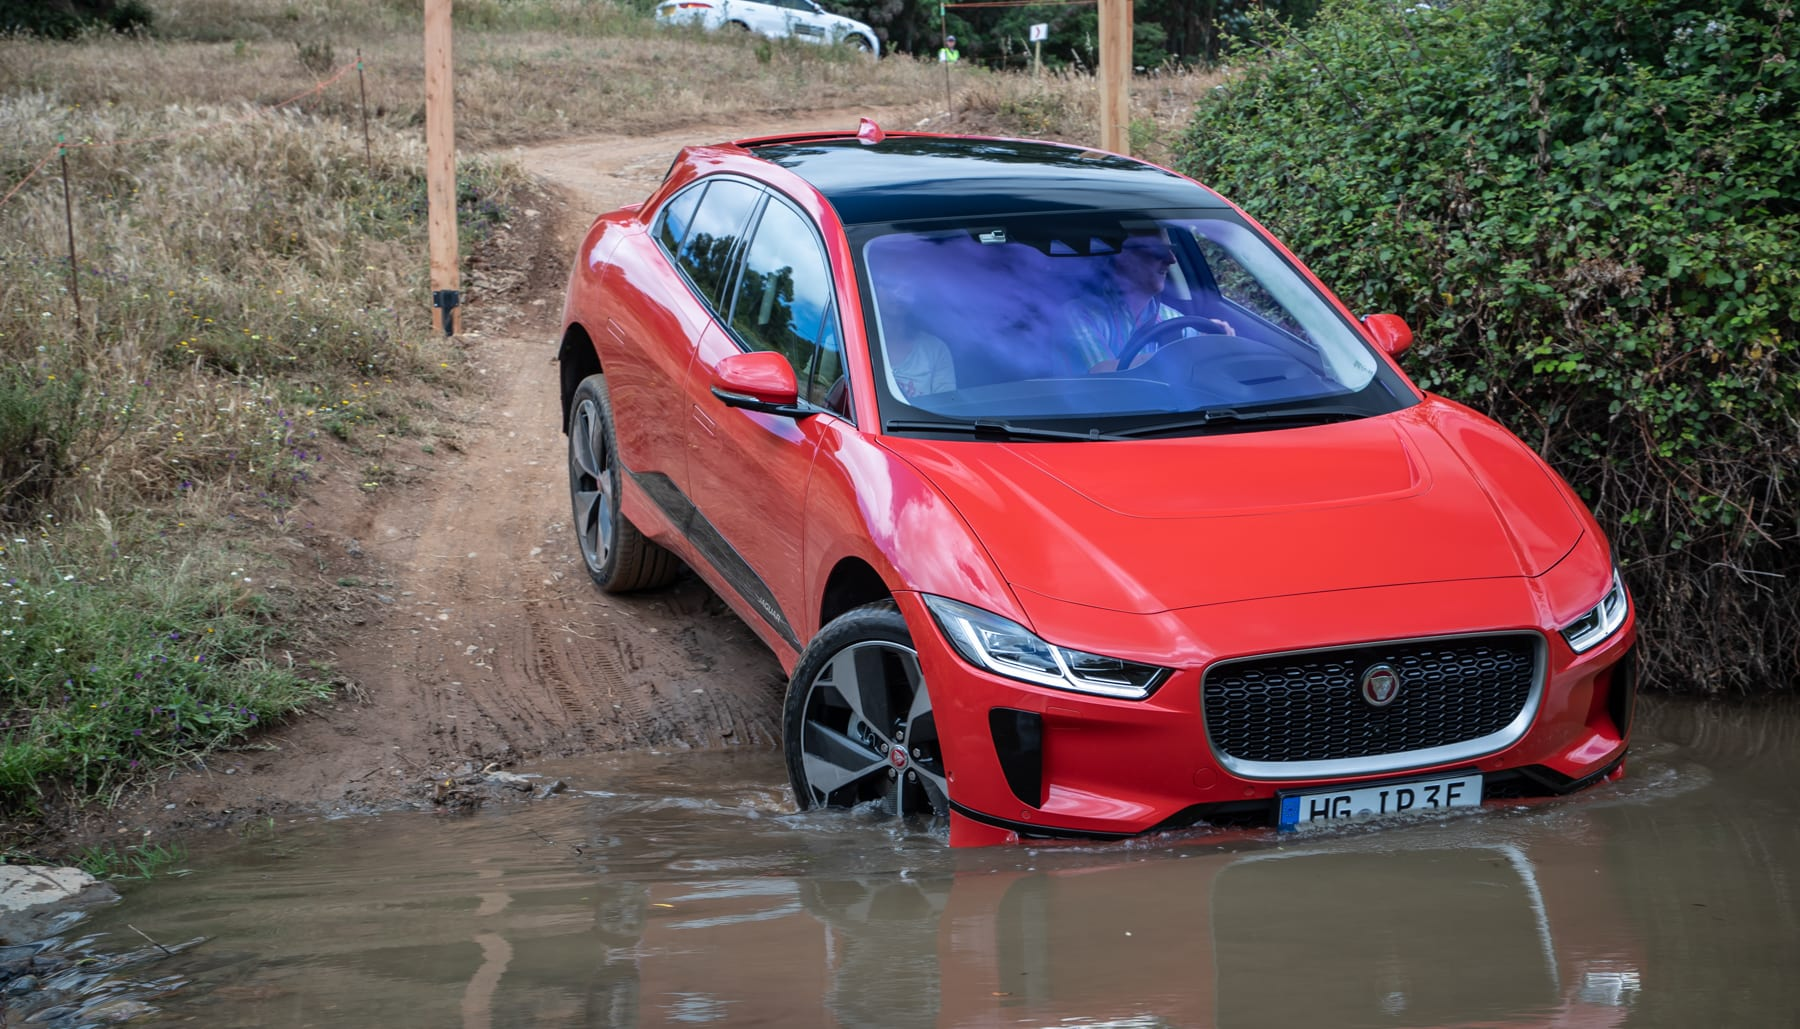 With That In Mind It Wasn T Surprising When The I Pace S All Wheel Drive System Was Able To Conquer A Rutted Steep Path Up Mountain